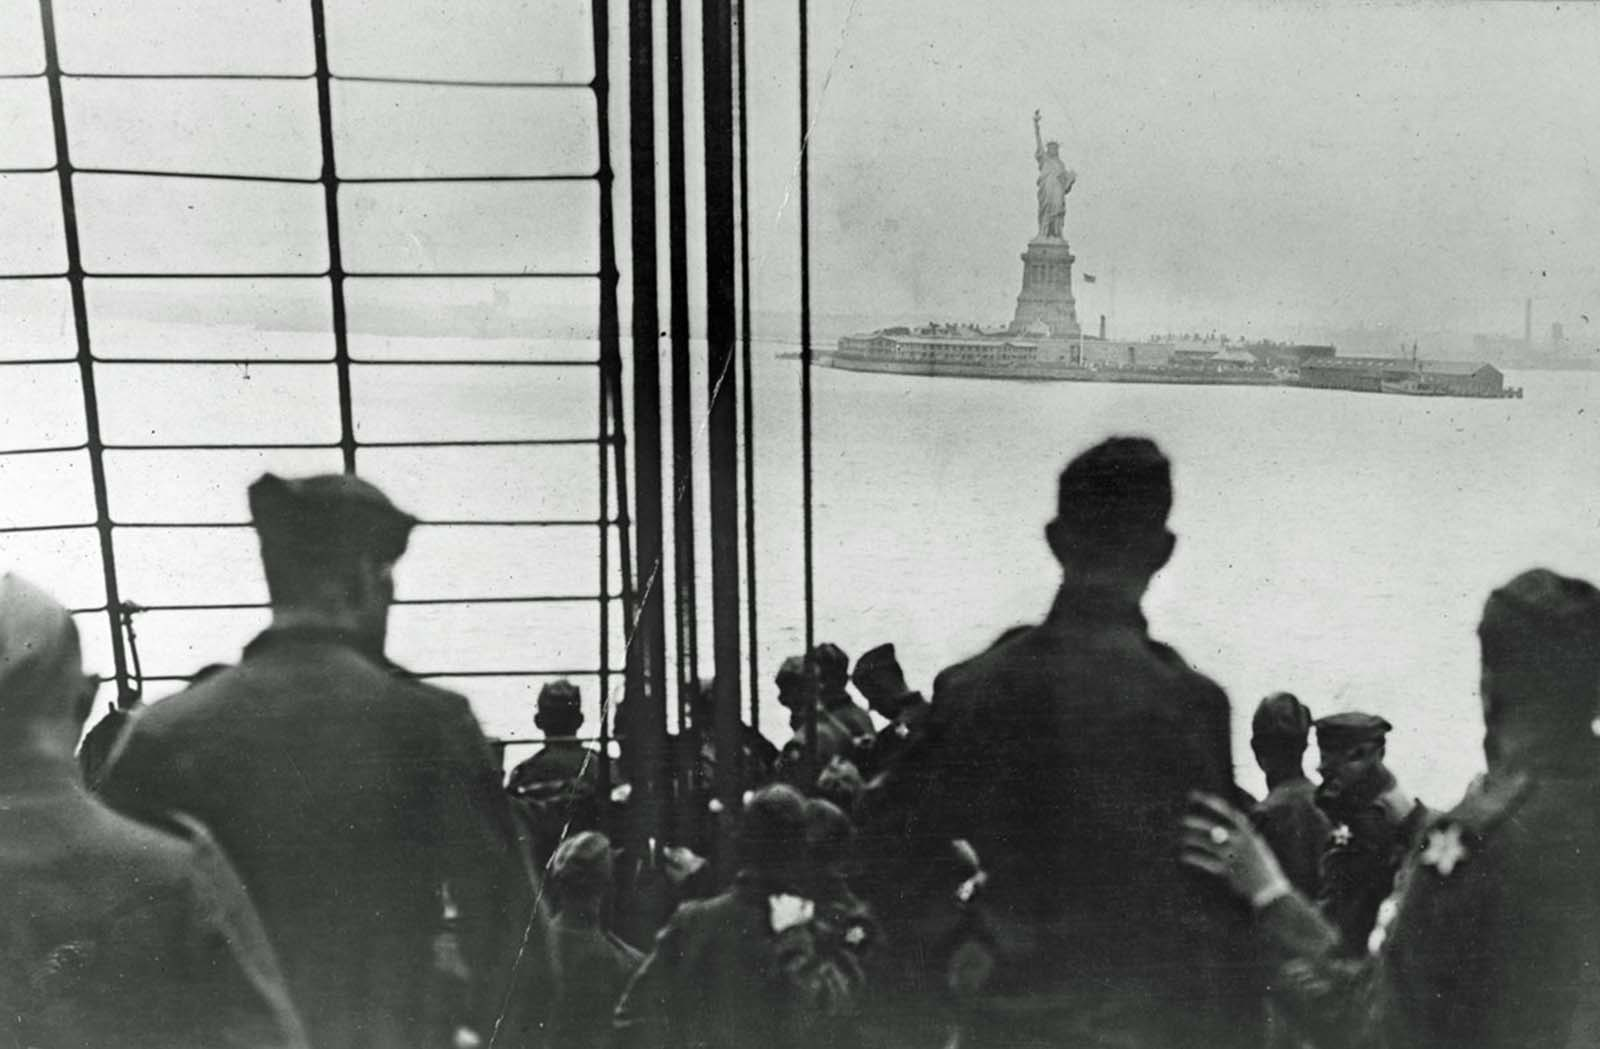 The Statue of Liberty greets the Second Division as it arrives in New York City on August 8, 1919.